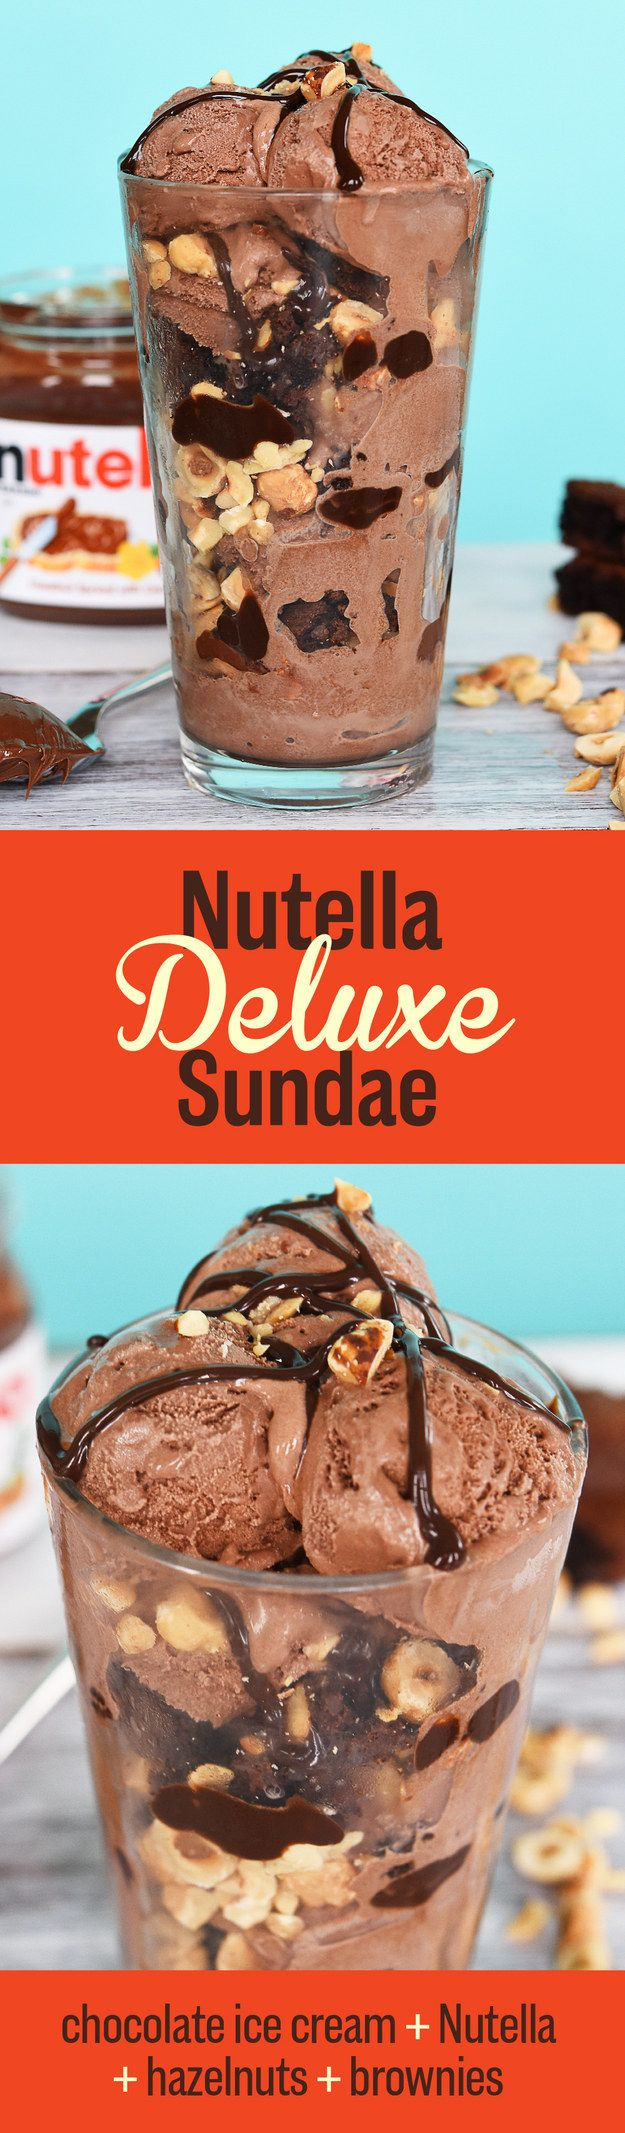 Nutella Deluxe Sundae | These Ice Cream Sundaes Will Change Your Life. just minus the nutella.